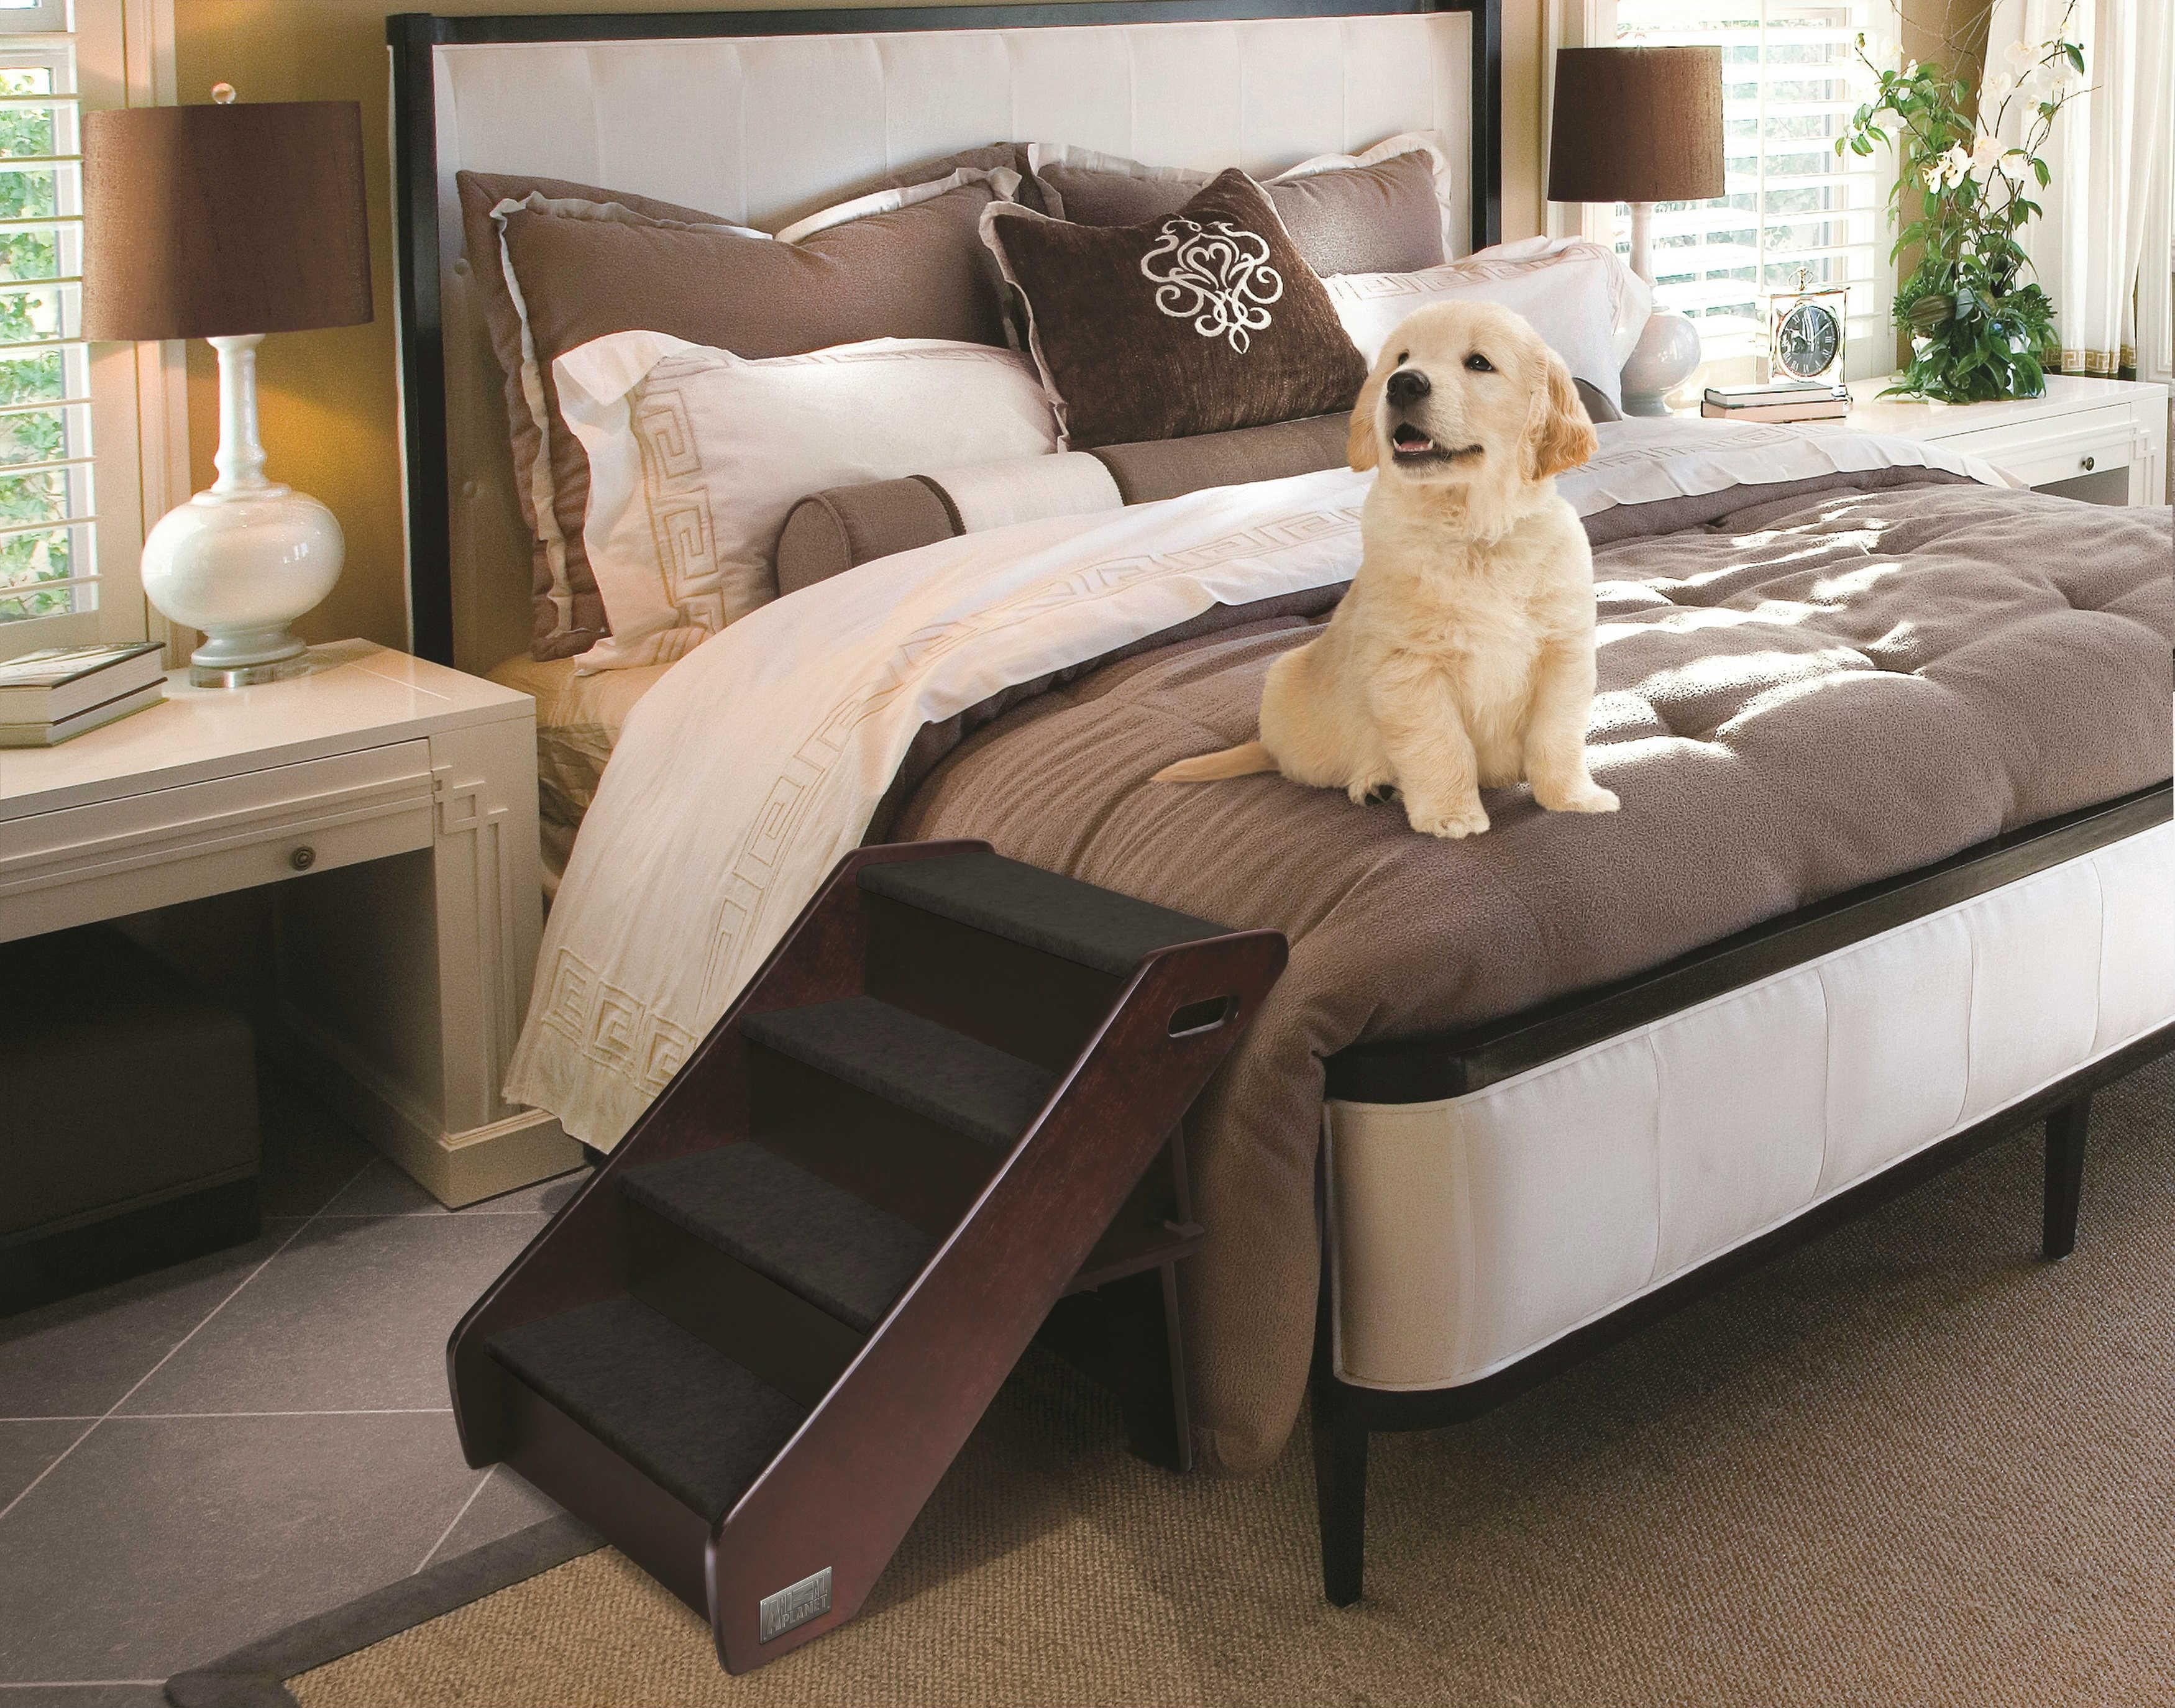 Pin by L Nobs on home ideas (With images) Dog bed large